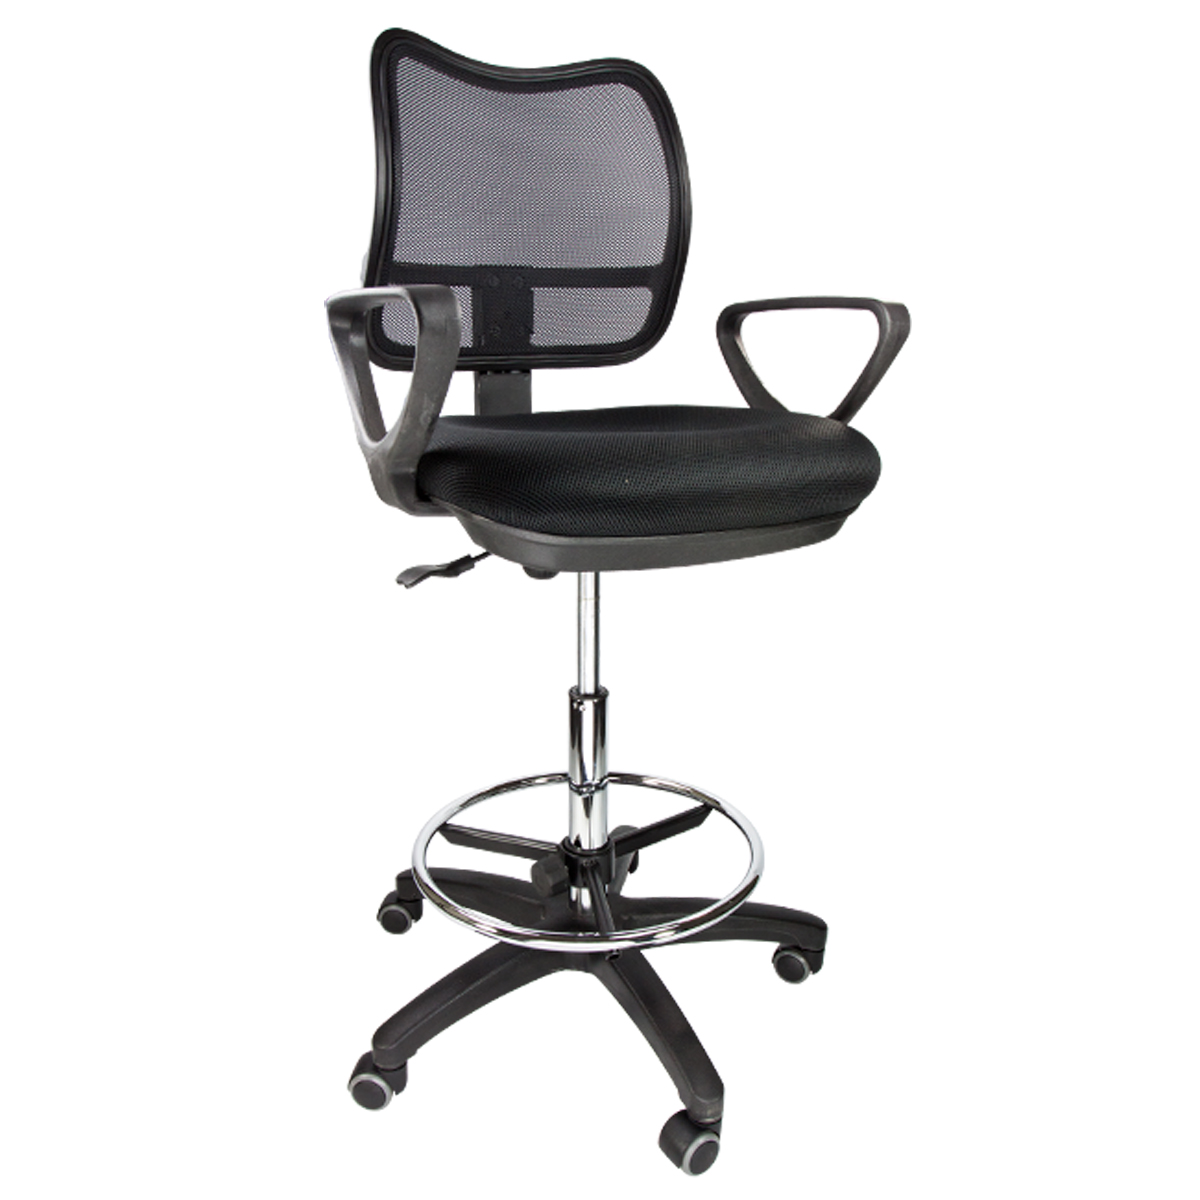 ergonomic drafting chair with arms steel folding chairs mesh stool armrest adjustable